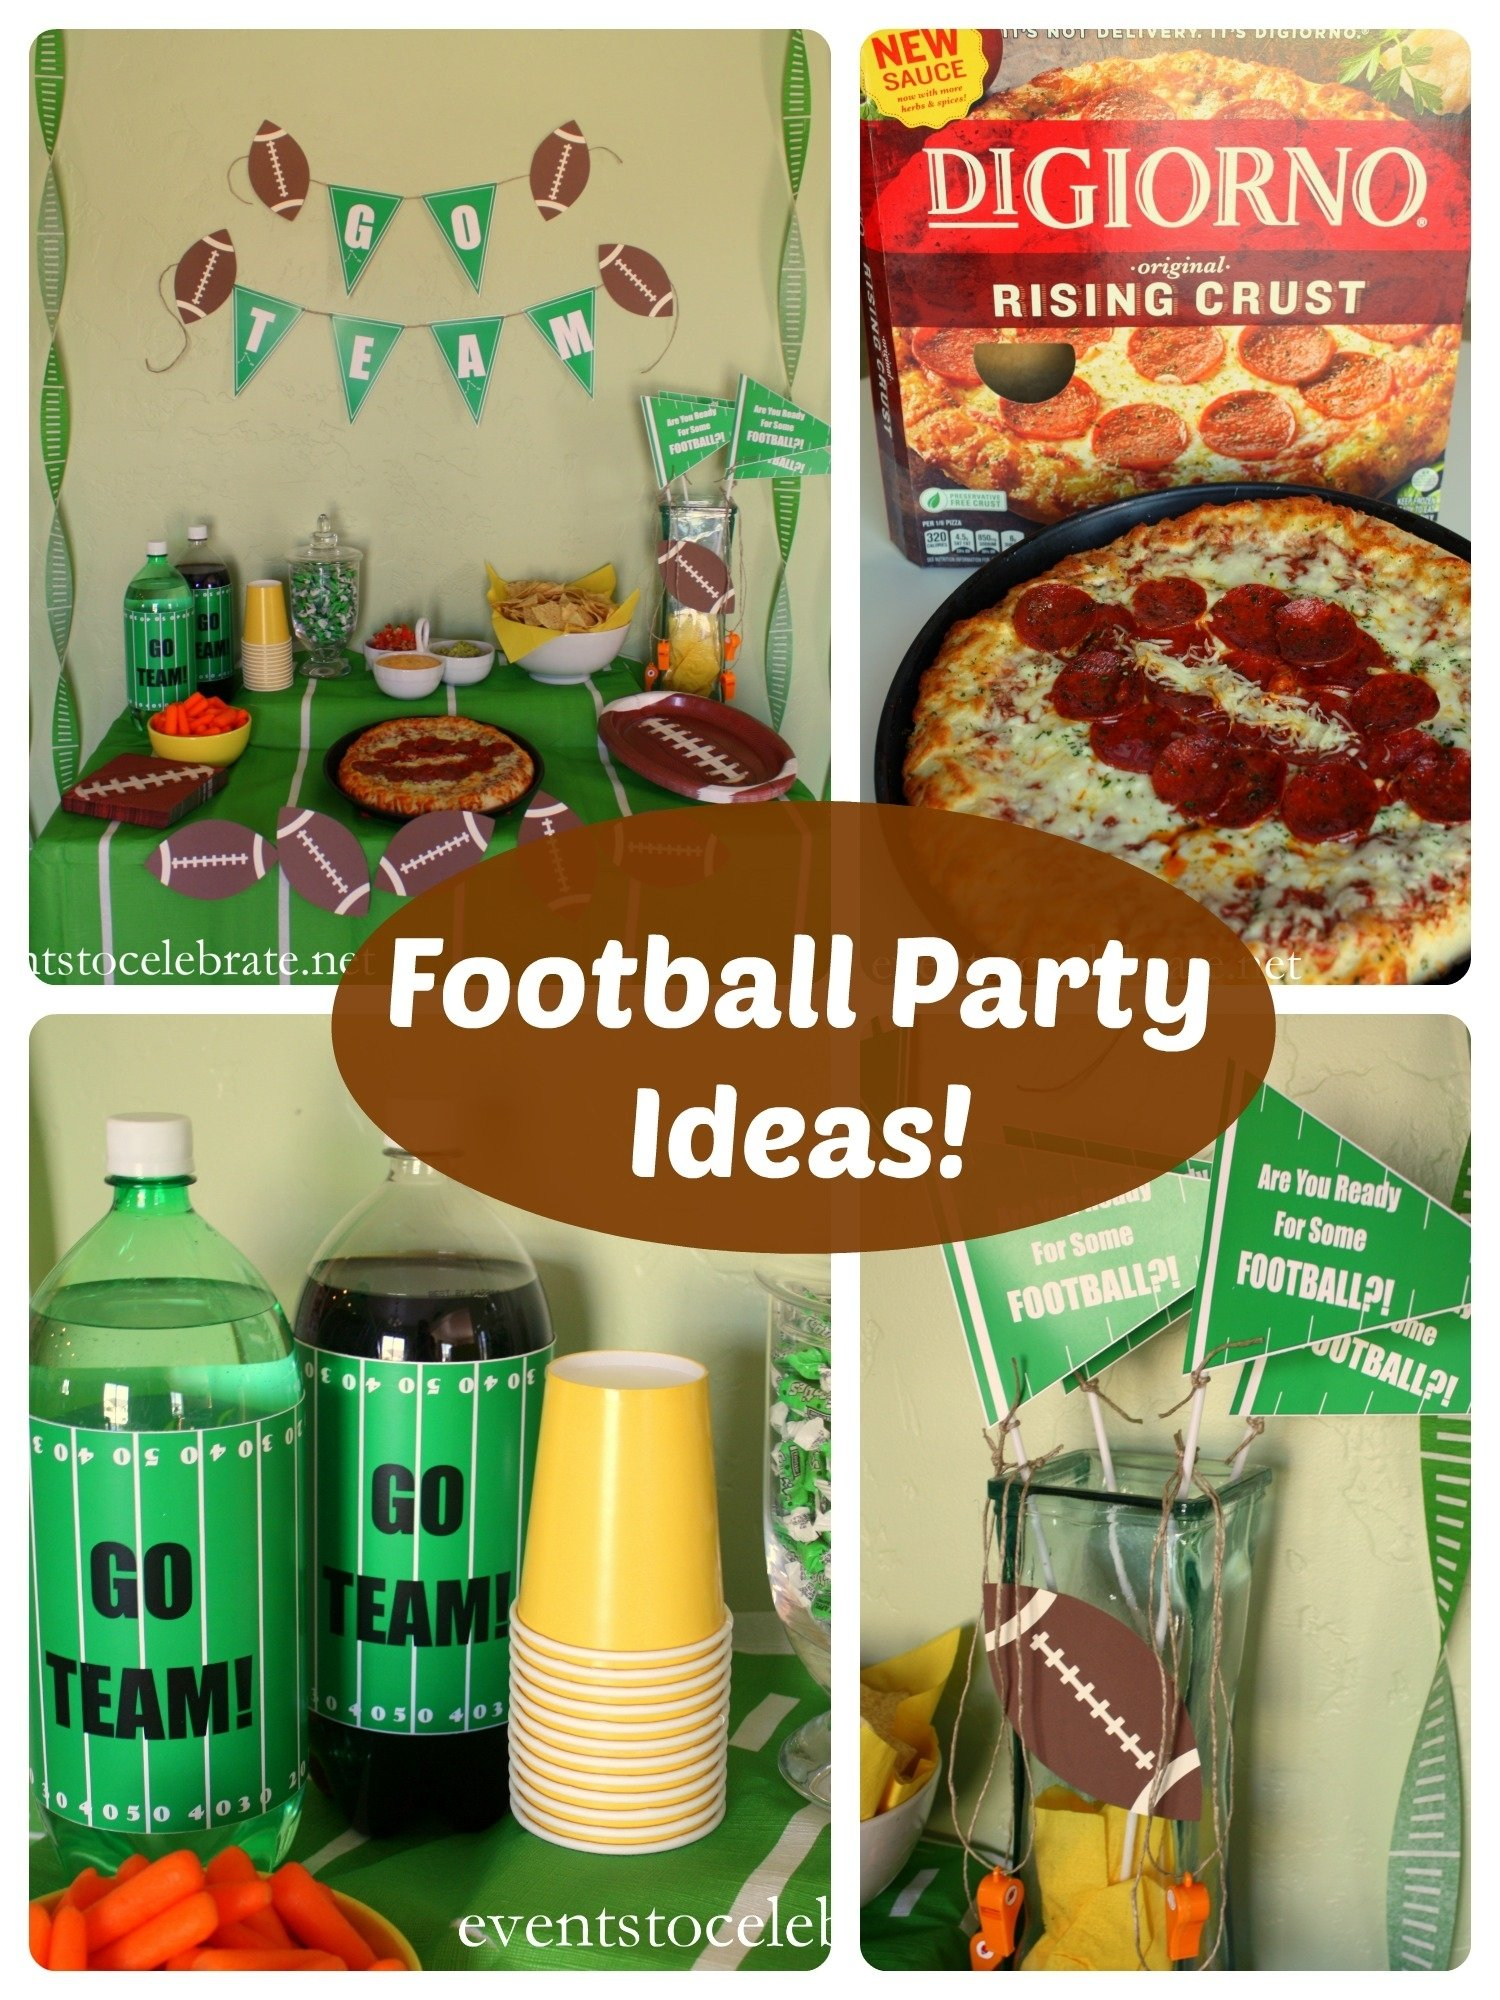 football party ideas - events to celebrate!